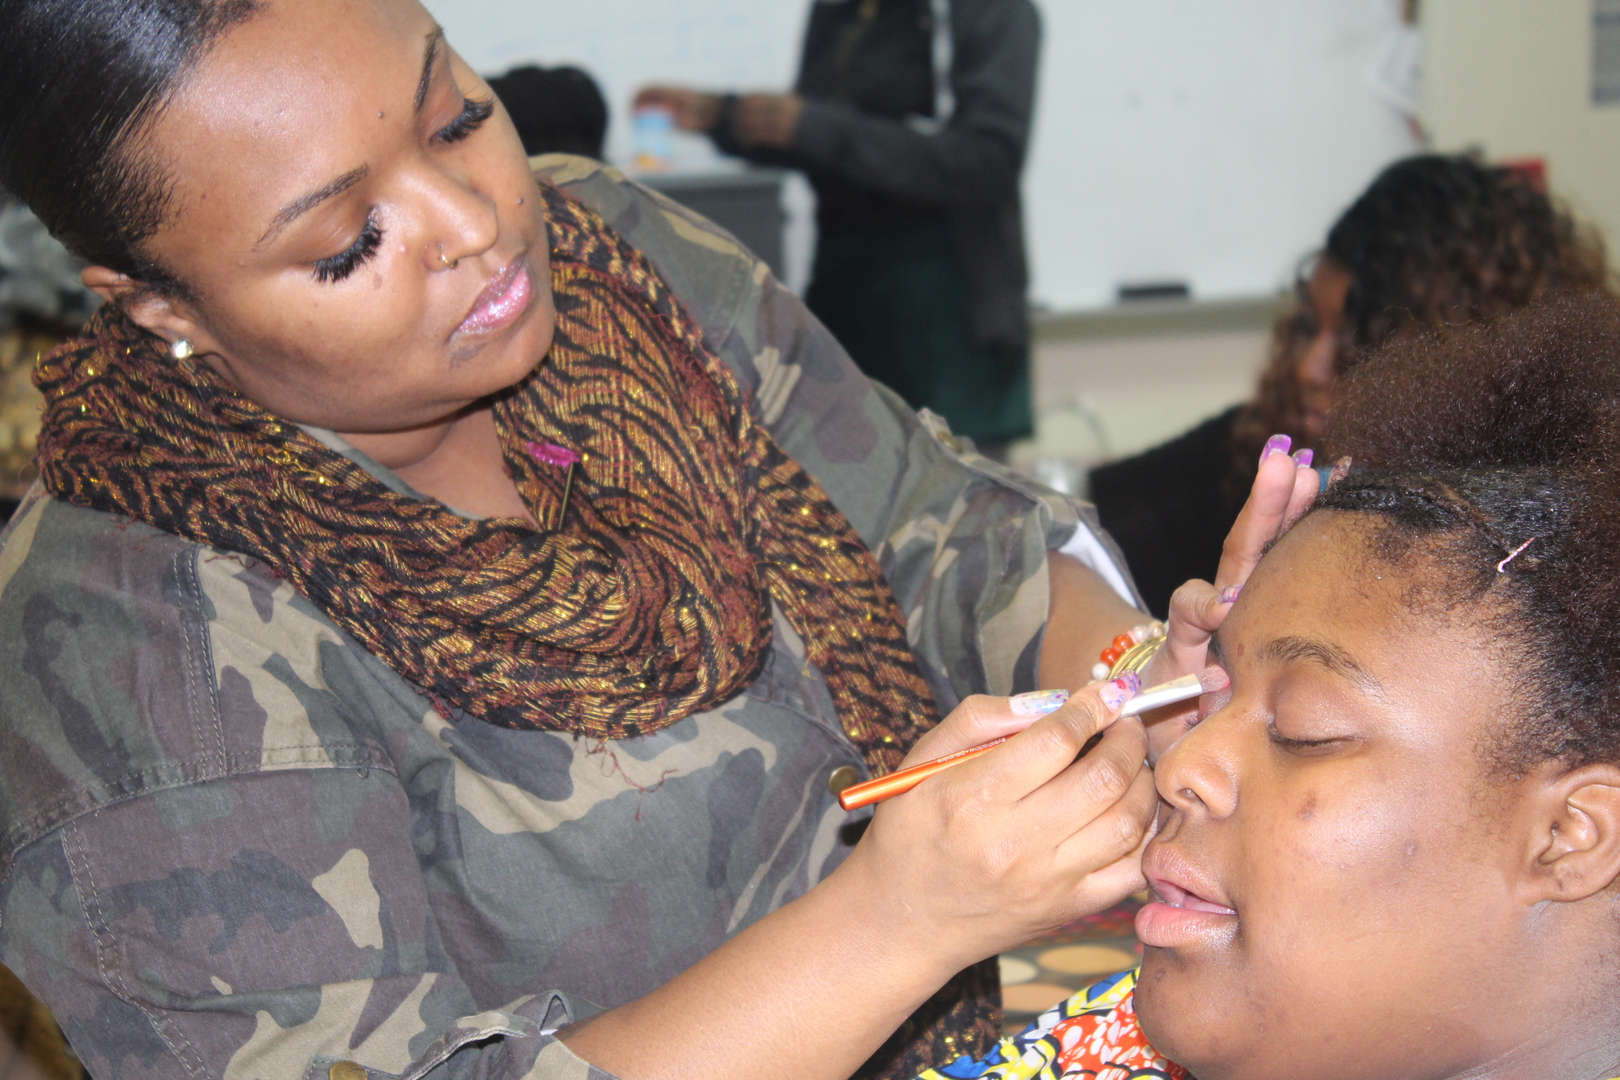 Student getting make-up done